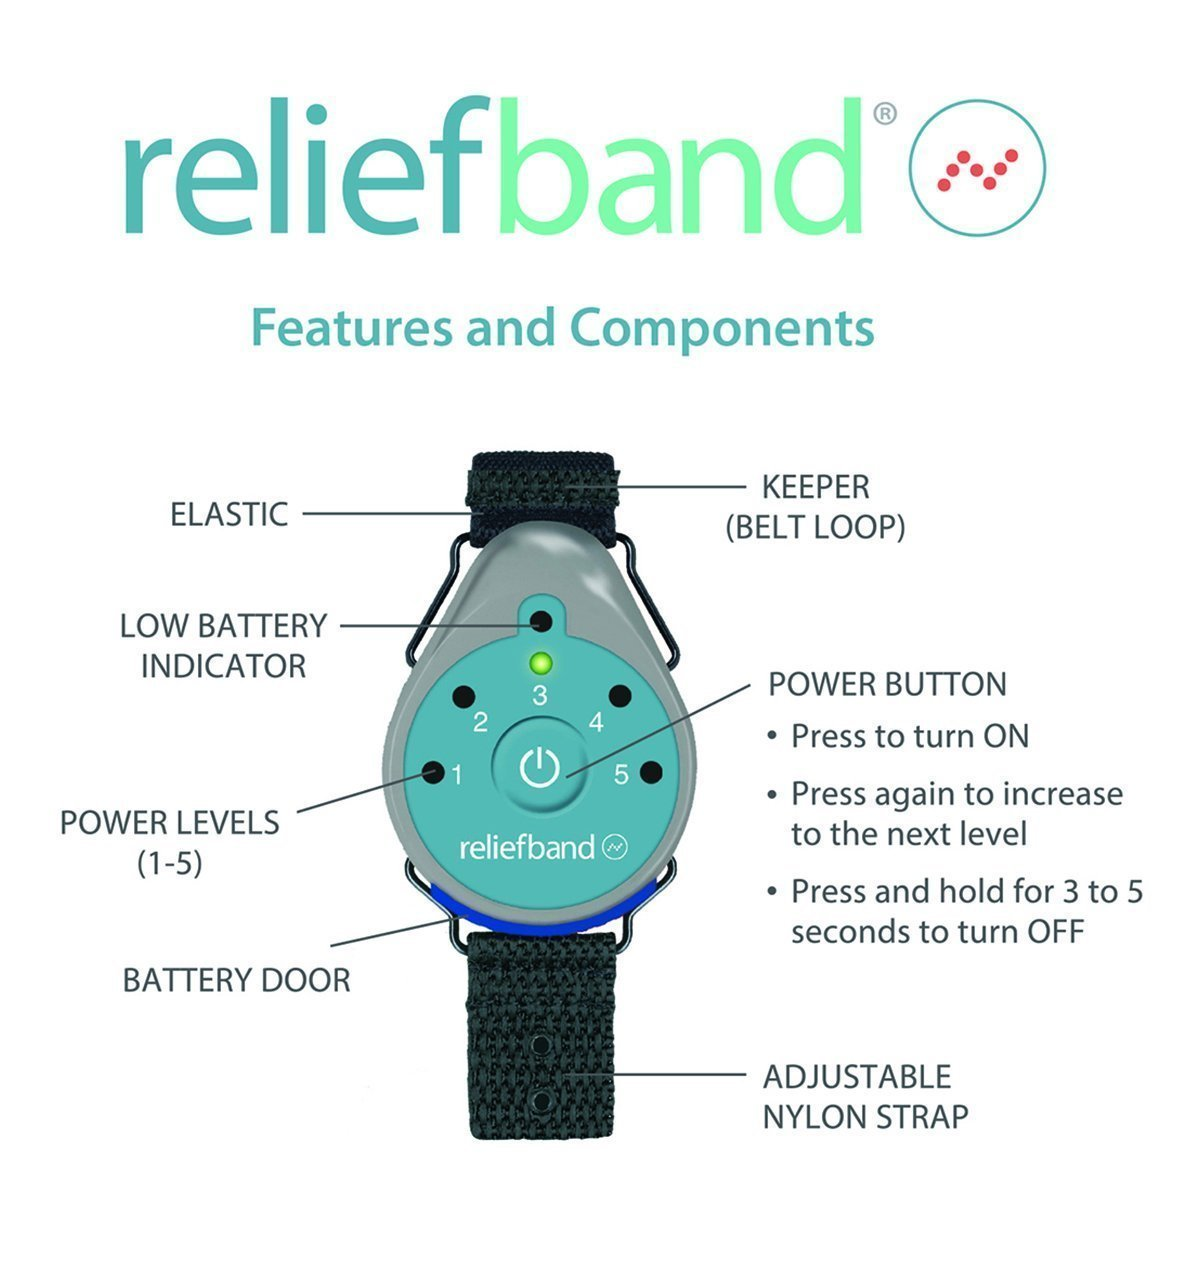 Amazon.com: Reliefband for Motion and Morning Sickness BUNDLE - INCLUDES - 2 Blucoil CR2025 Batteries AND Replacement Conductivity Gel Tube 7.5ml: Health ...